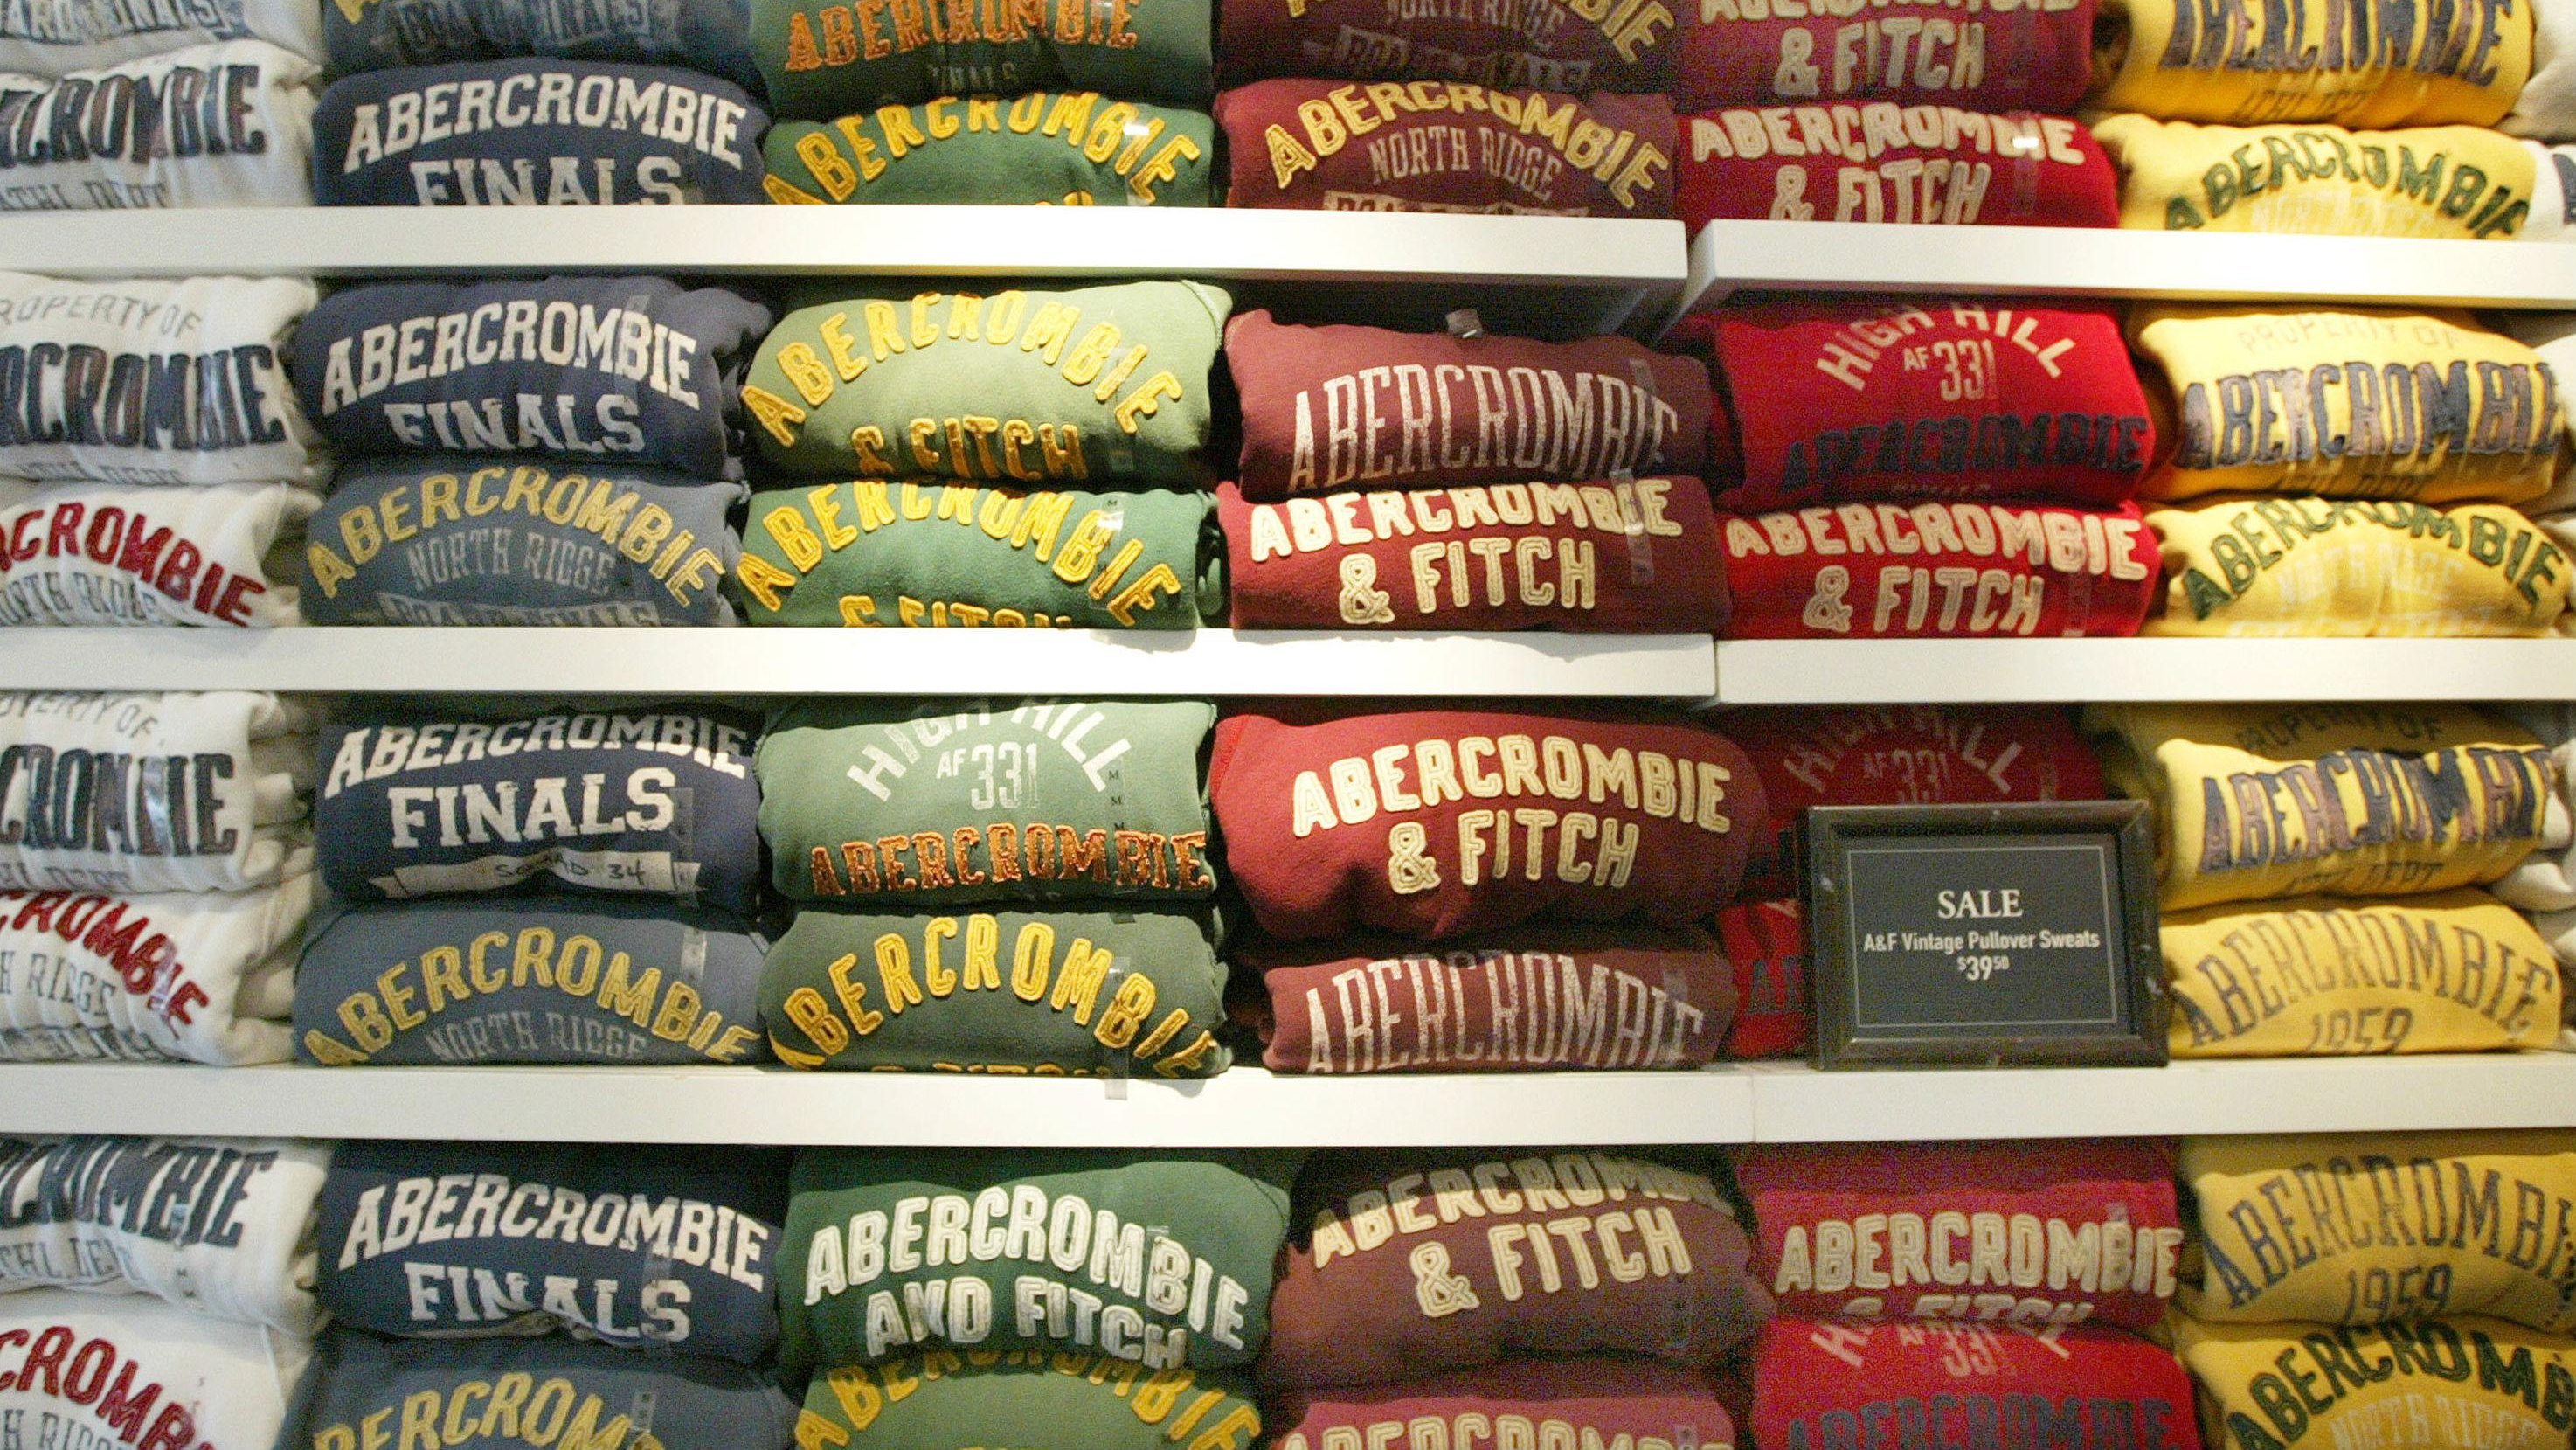 Sorry, Abercrombie and Fitch just isn't cool anymore